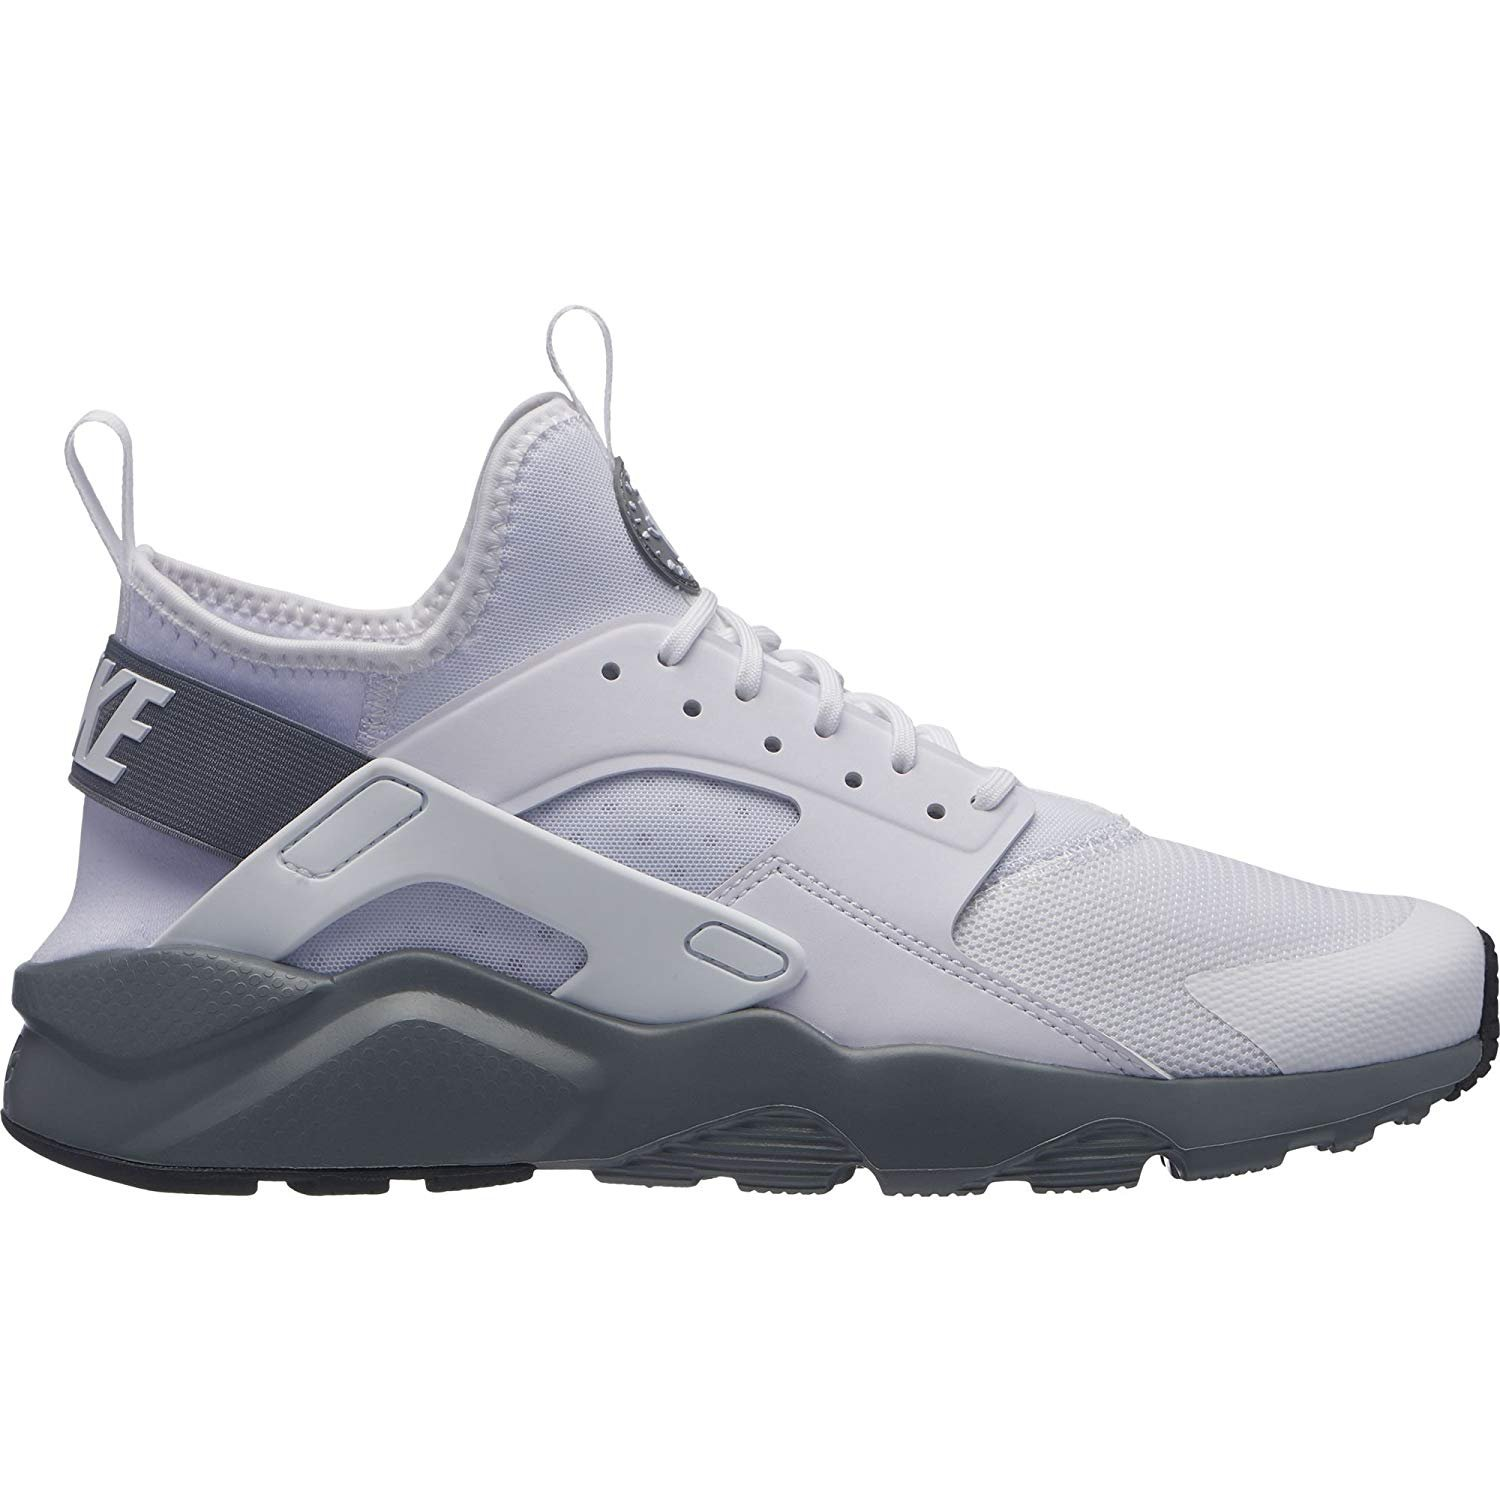 nike hommes s s s air huarache cours ultra - basket, blanc cool Gris, 9,5 8543a2